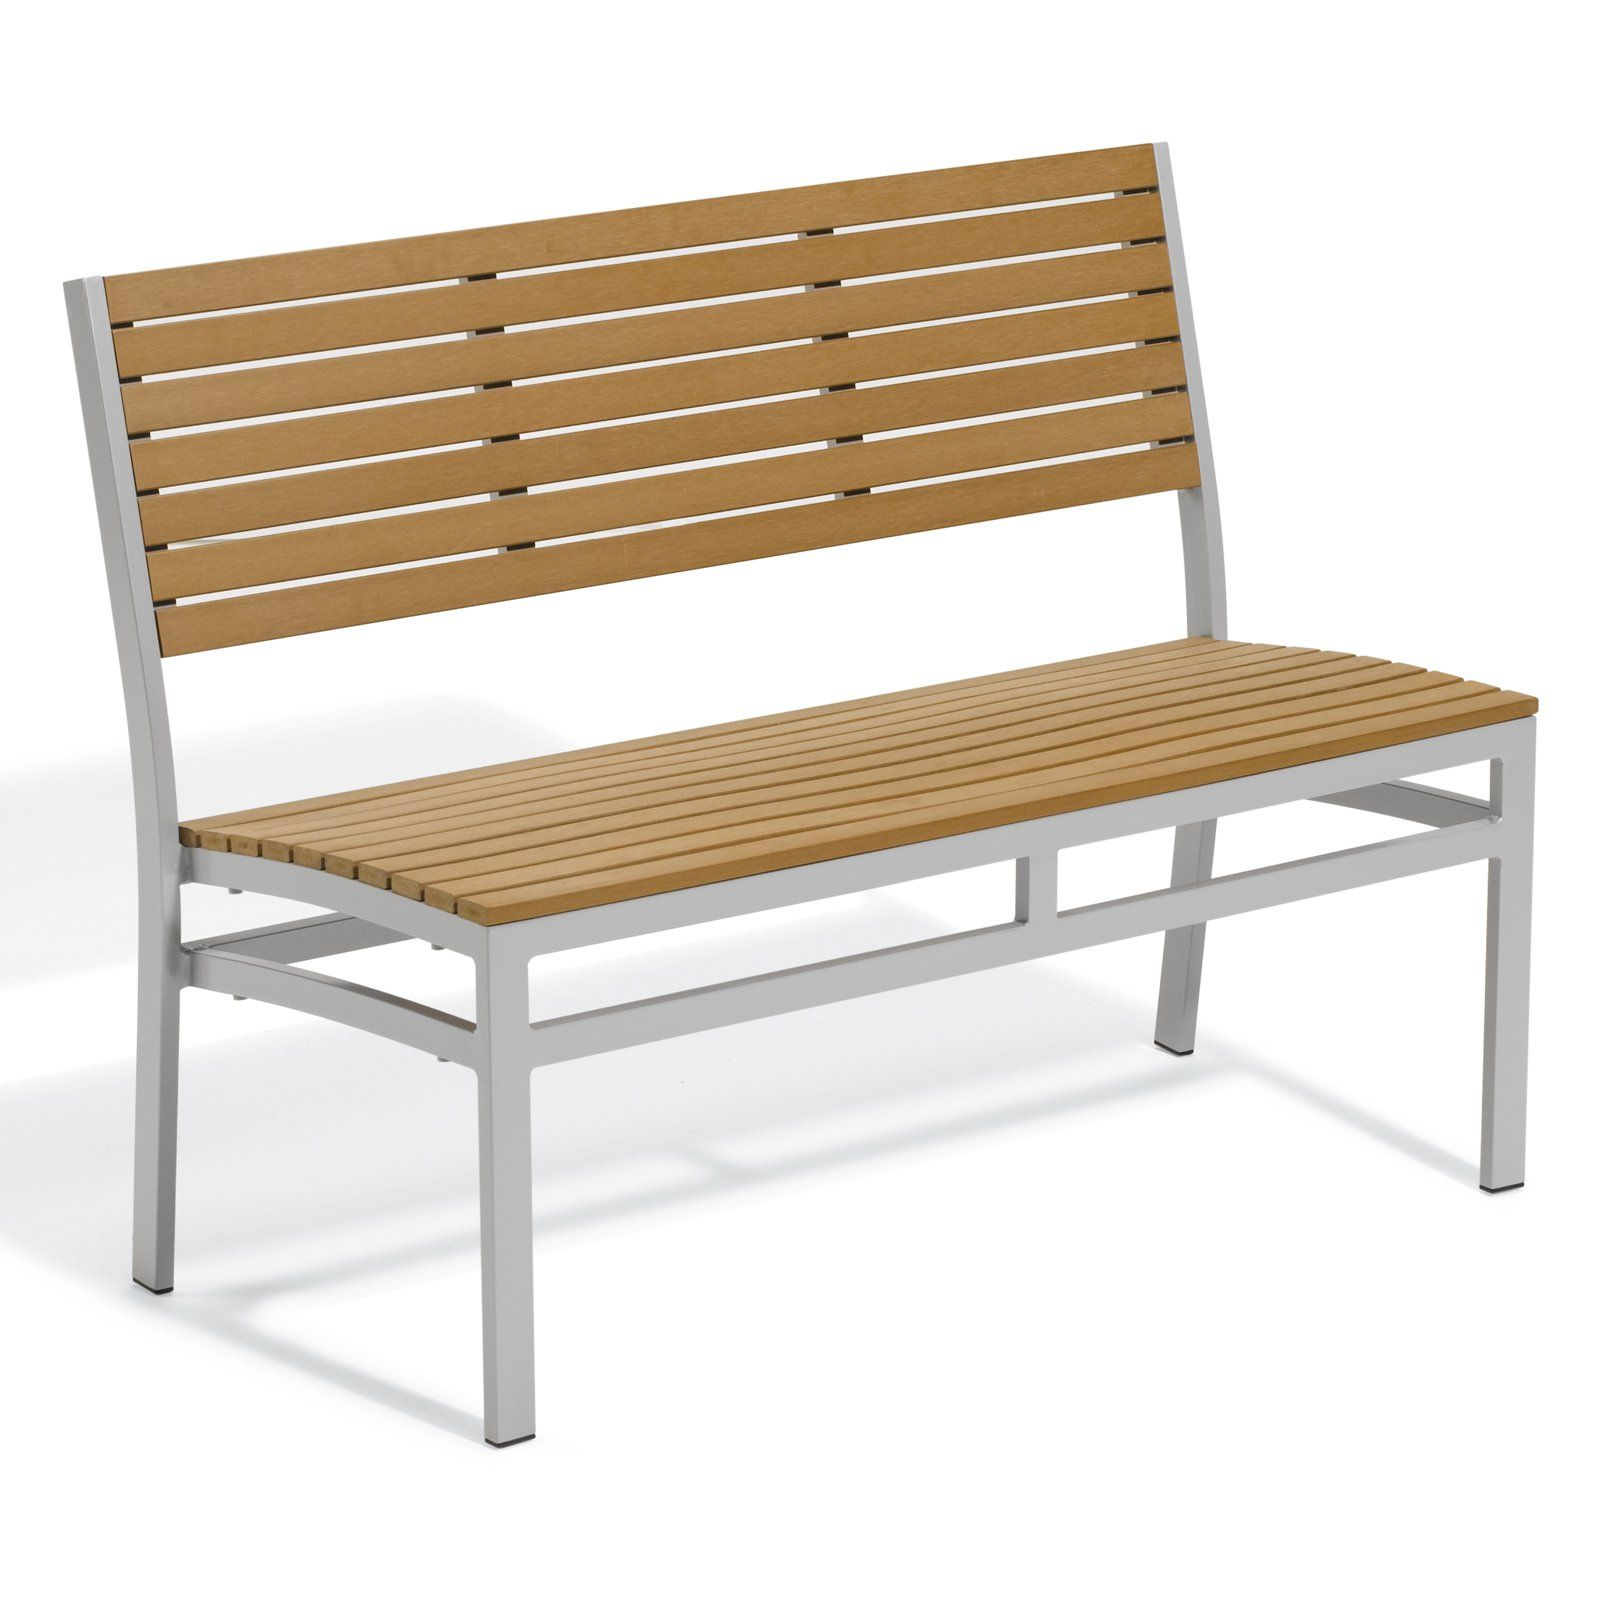 Enjoyable Outdoor Oxford Garden Travira 48 In Tekwood Stacking Bench Gmtry Best Dining Table And Chair Ideas Images Gmtryco